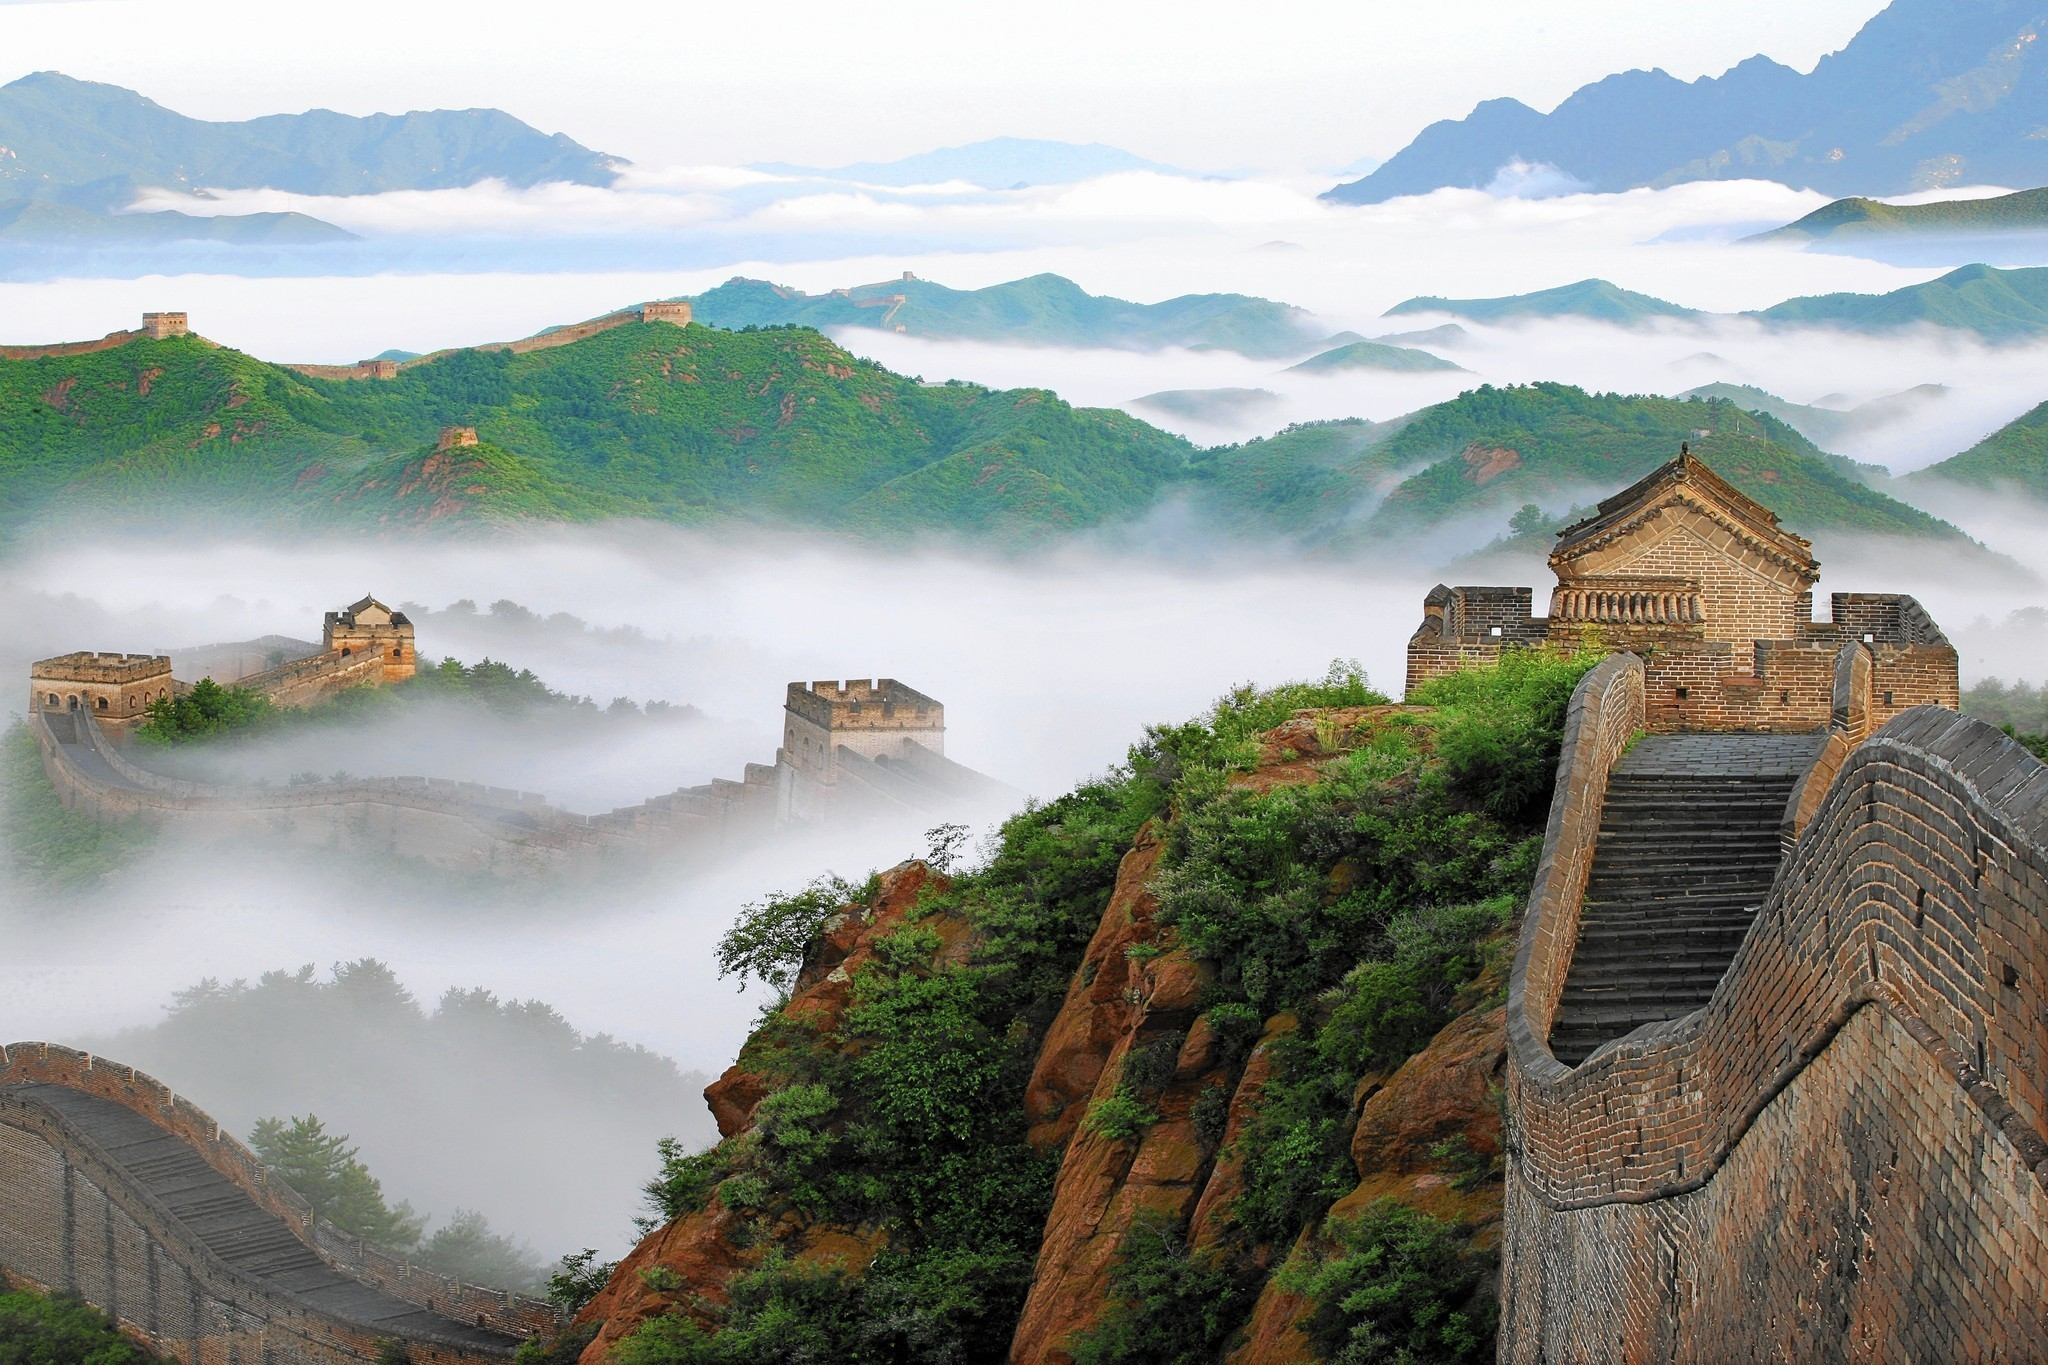 travel poem poems china poetry joy irresistible journeys inspire exploration many story flung stevenson mentioned among far louis robert capture